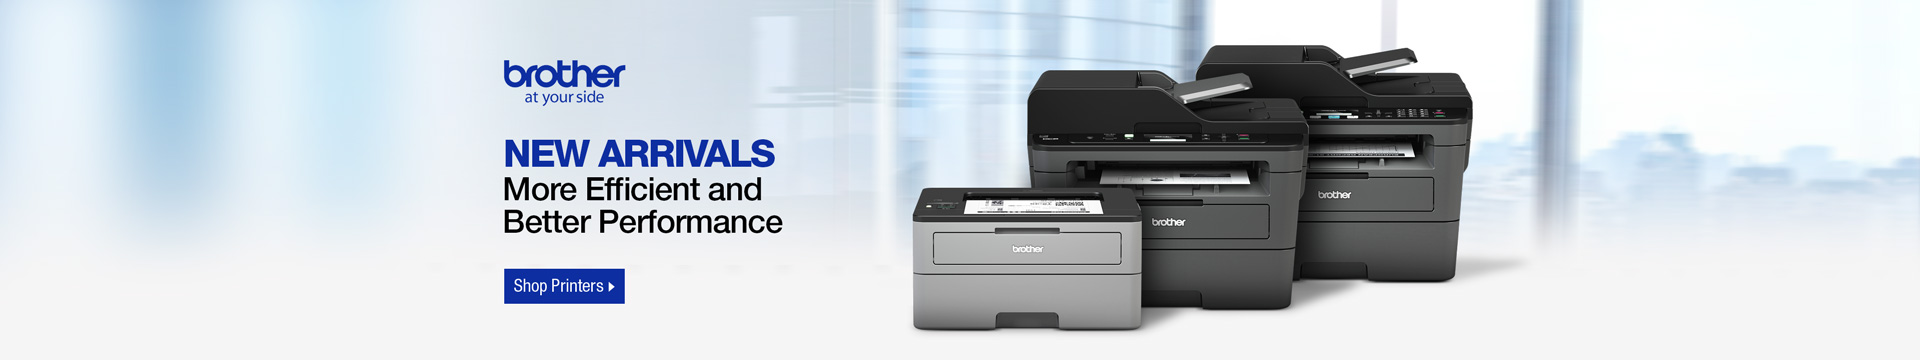 Printers & Scanners | All in one, Wireless, Color & More - Newegg.com